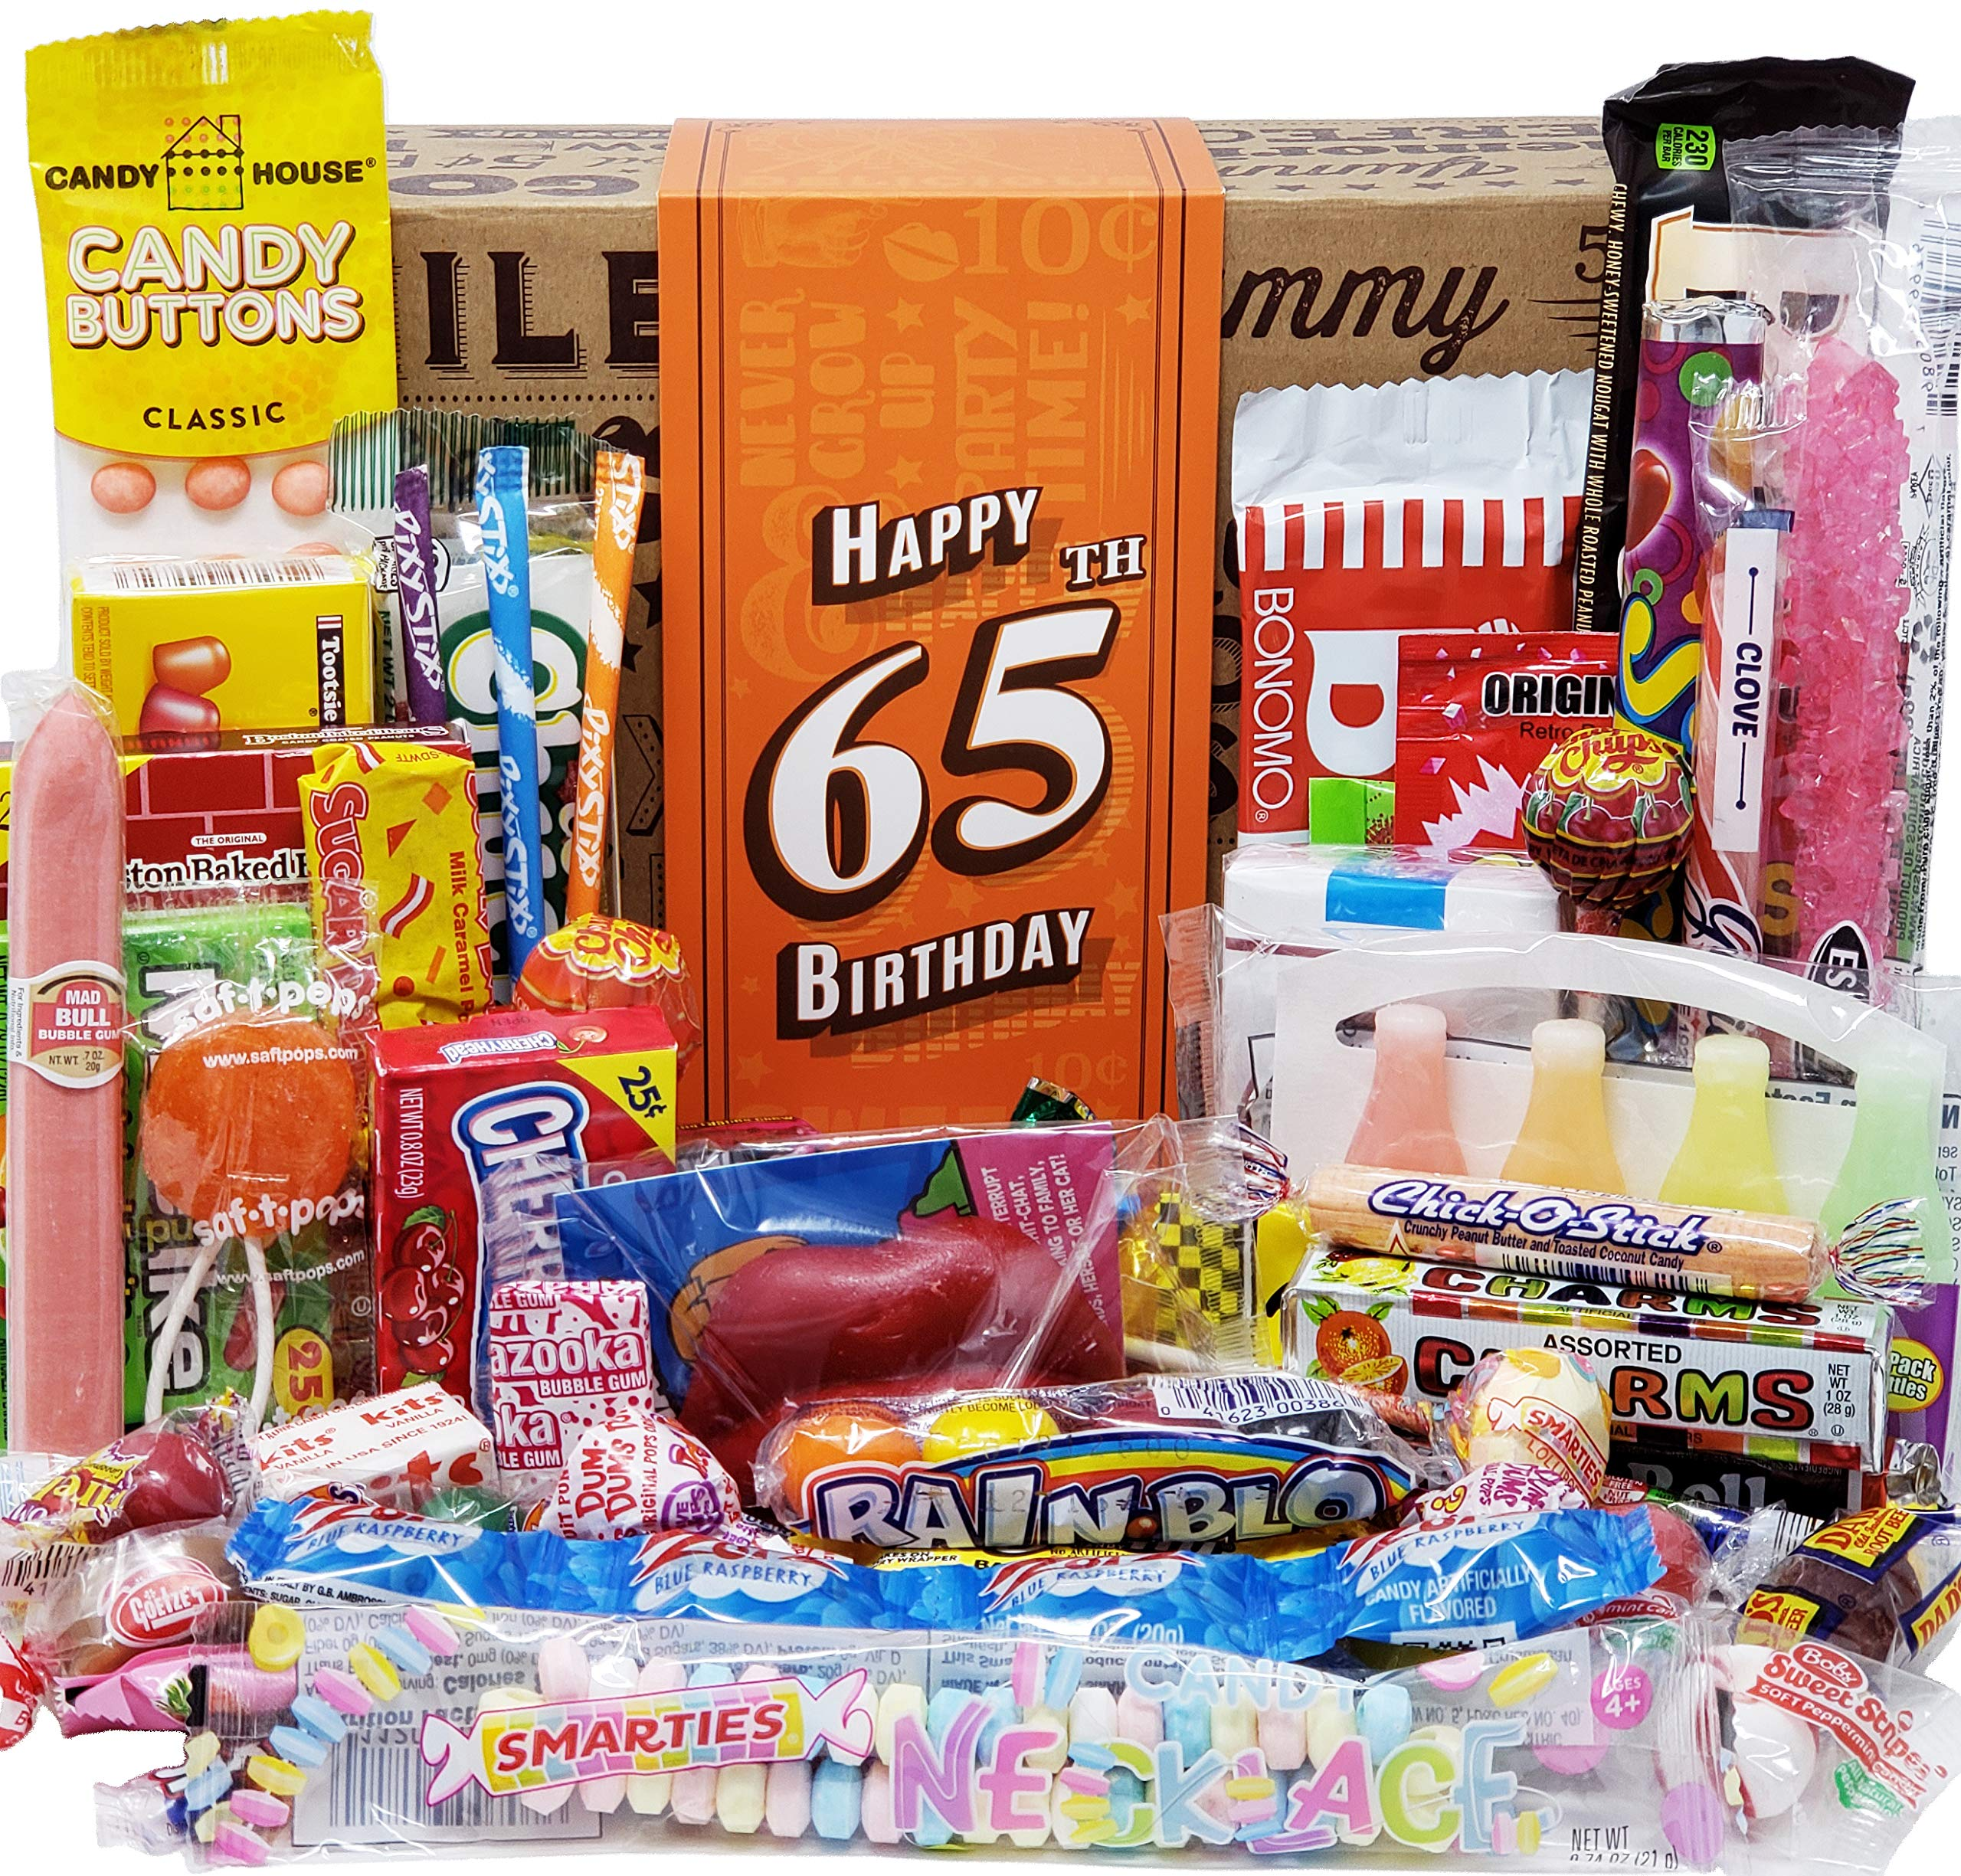 VINTAGE CANDY CO 65TH BIRTHDAY CANDY GIFT FOR MAN WOMAN